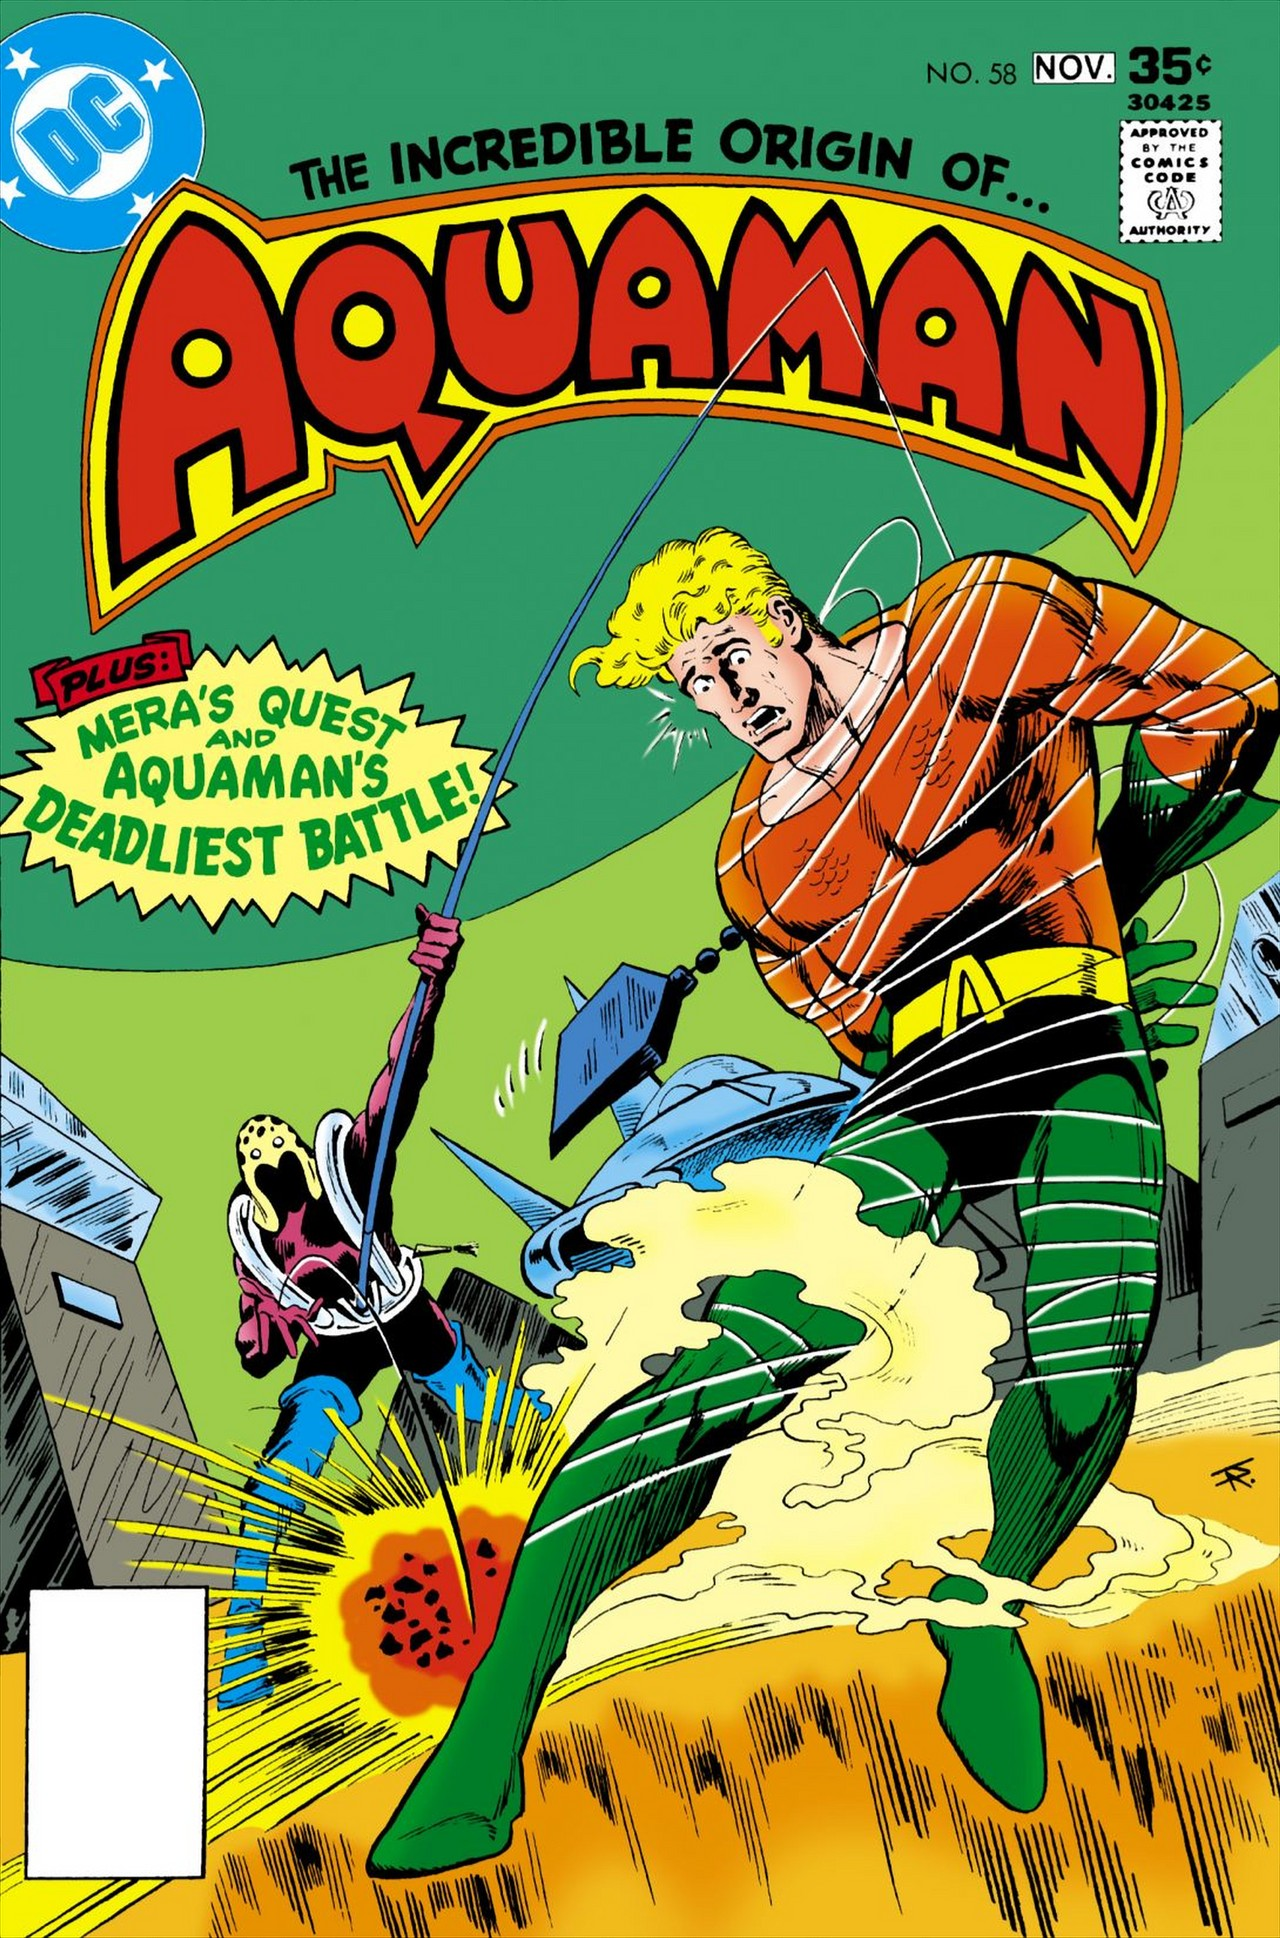 Read online Aquaman (1962) comic -  Issue #58 - 1